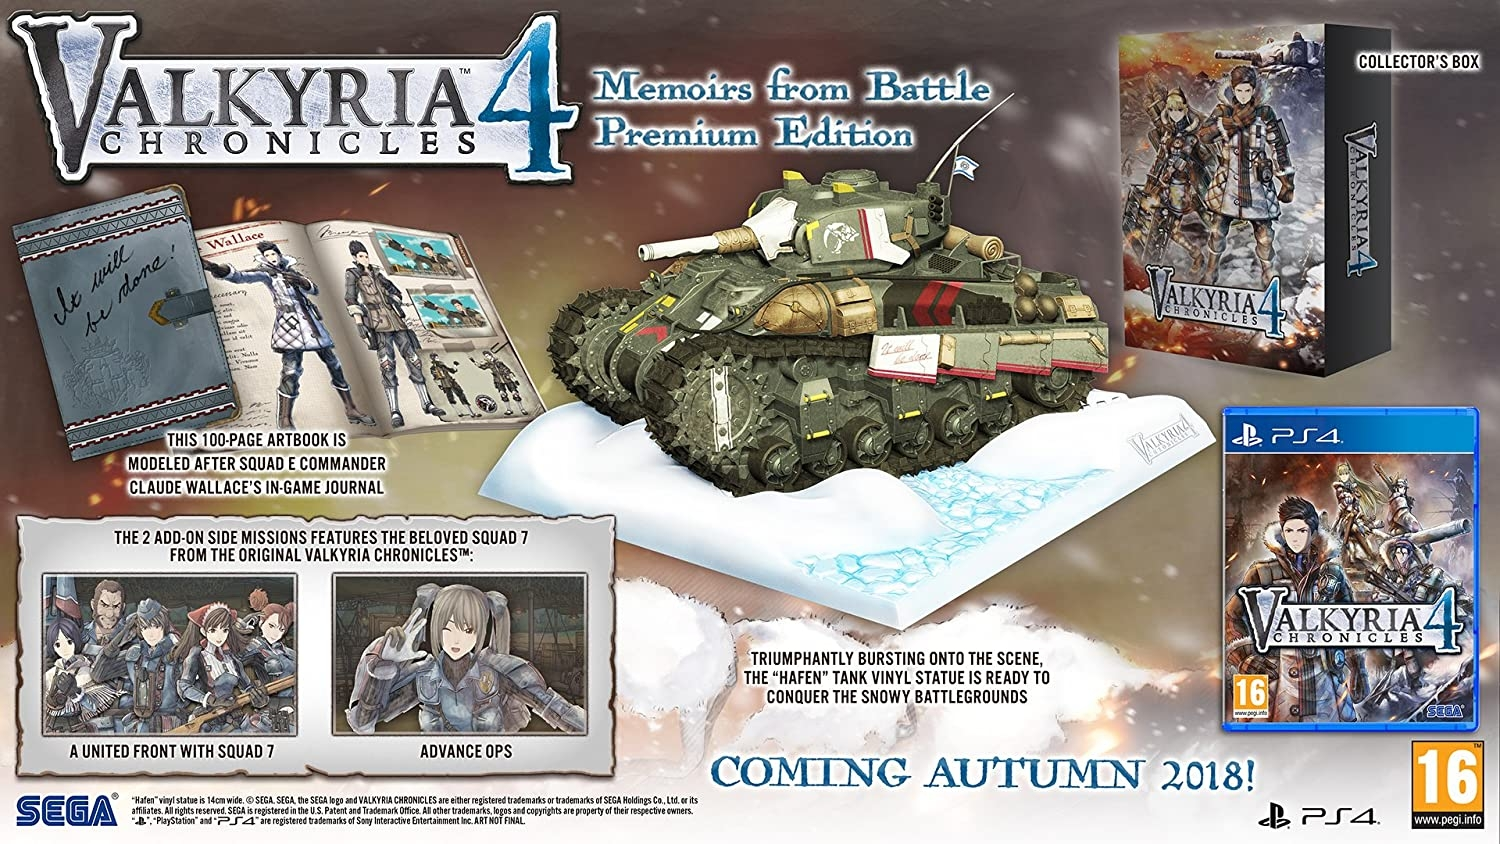 Valkyria Chronicles 4: Memoirs from Battle Premium Edition (PS4)